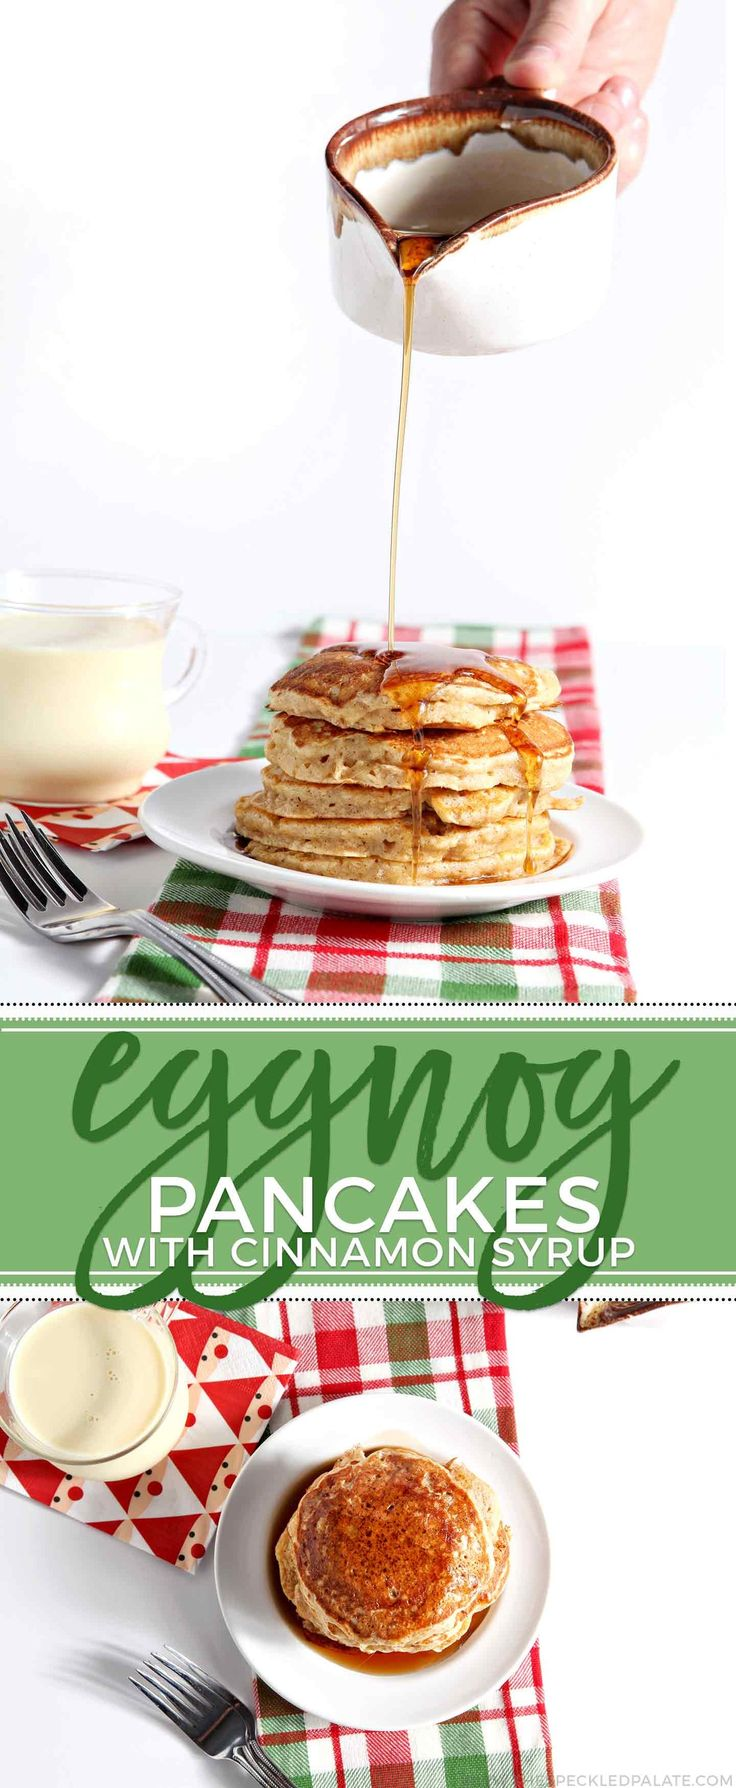 'Tis the season for eggnog and decadent breakfast! These Eggnog Pancakes with Cinnamon Syrup are the perfect Christmas Day treat to devour after opening presents beneath the tree.